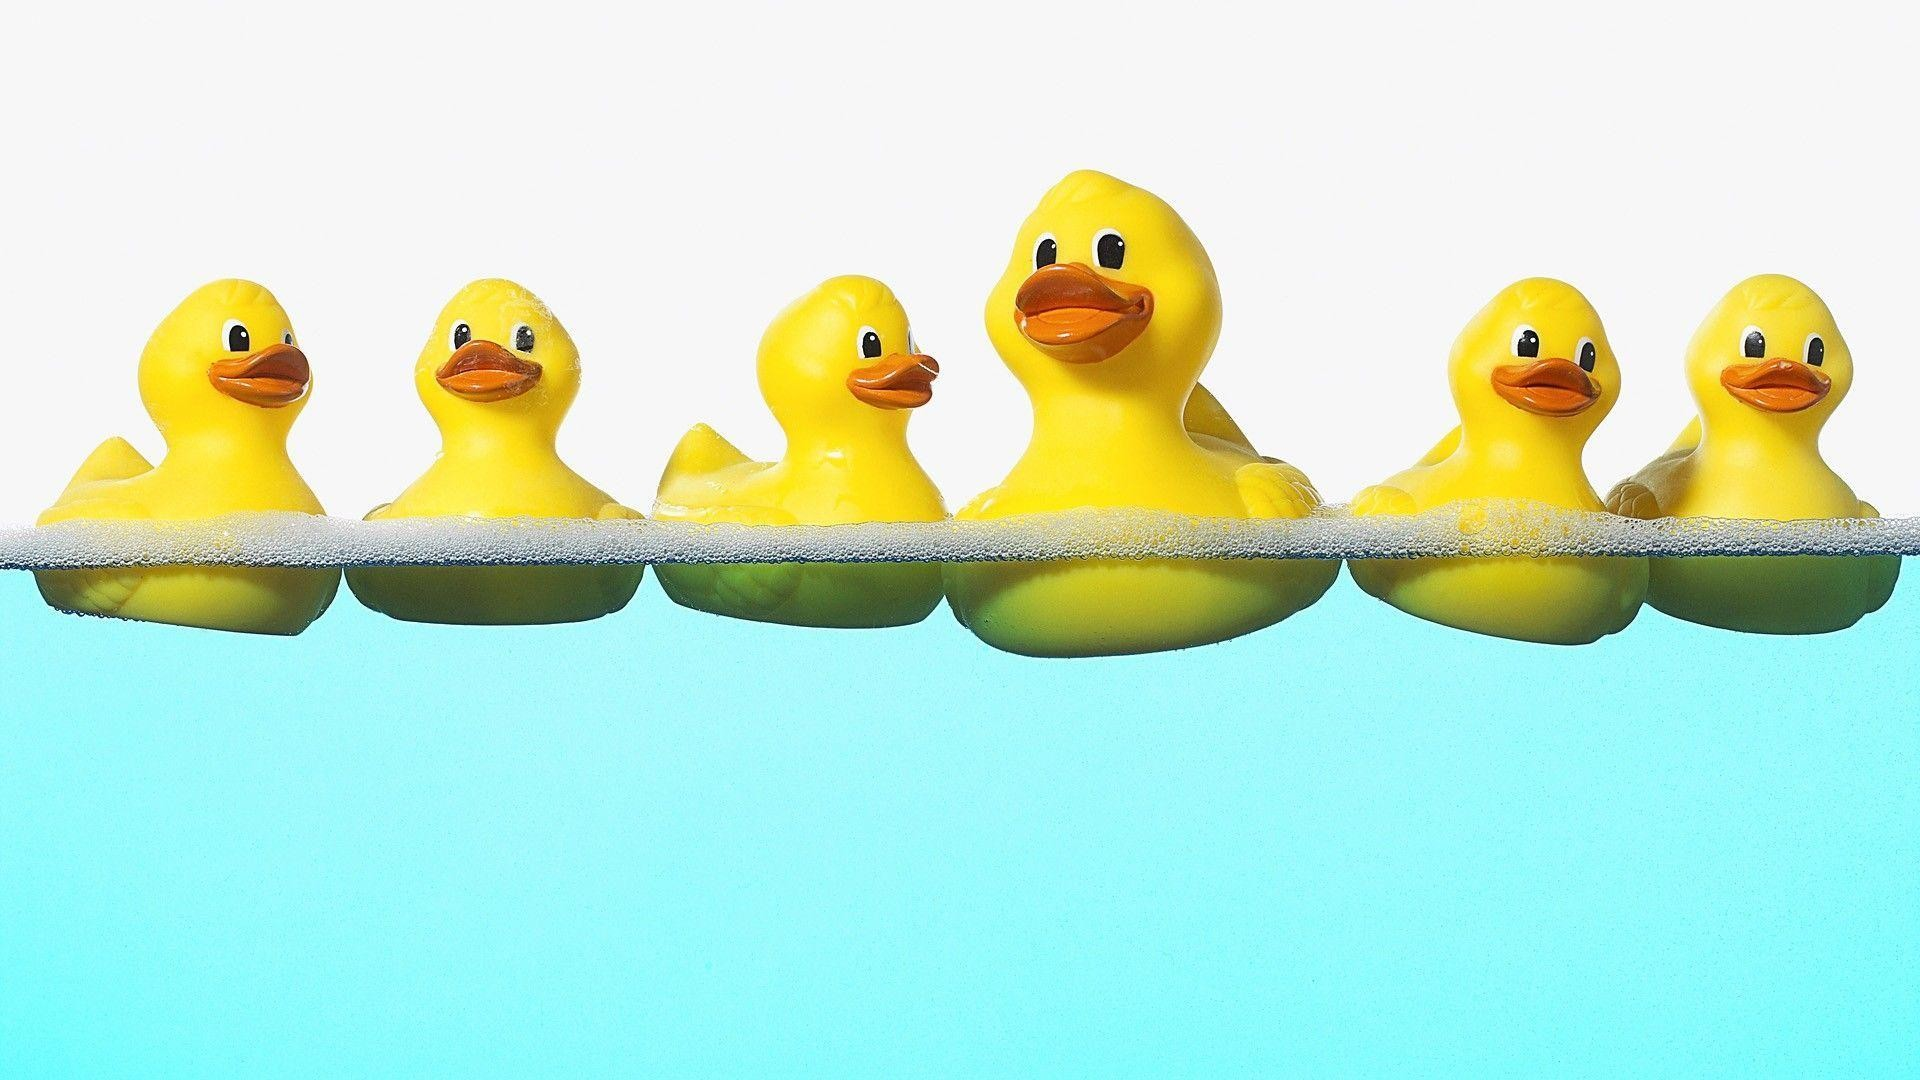 58 Rubber Duck Wallpapers on WallpaperPlay 1920x1080